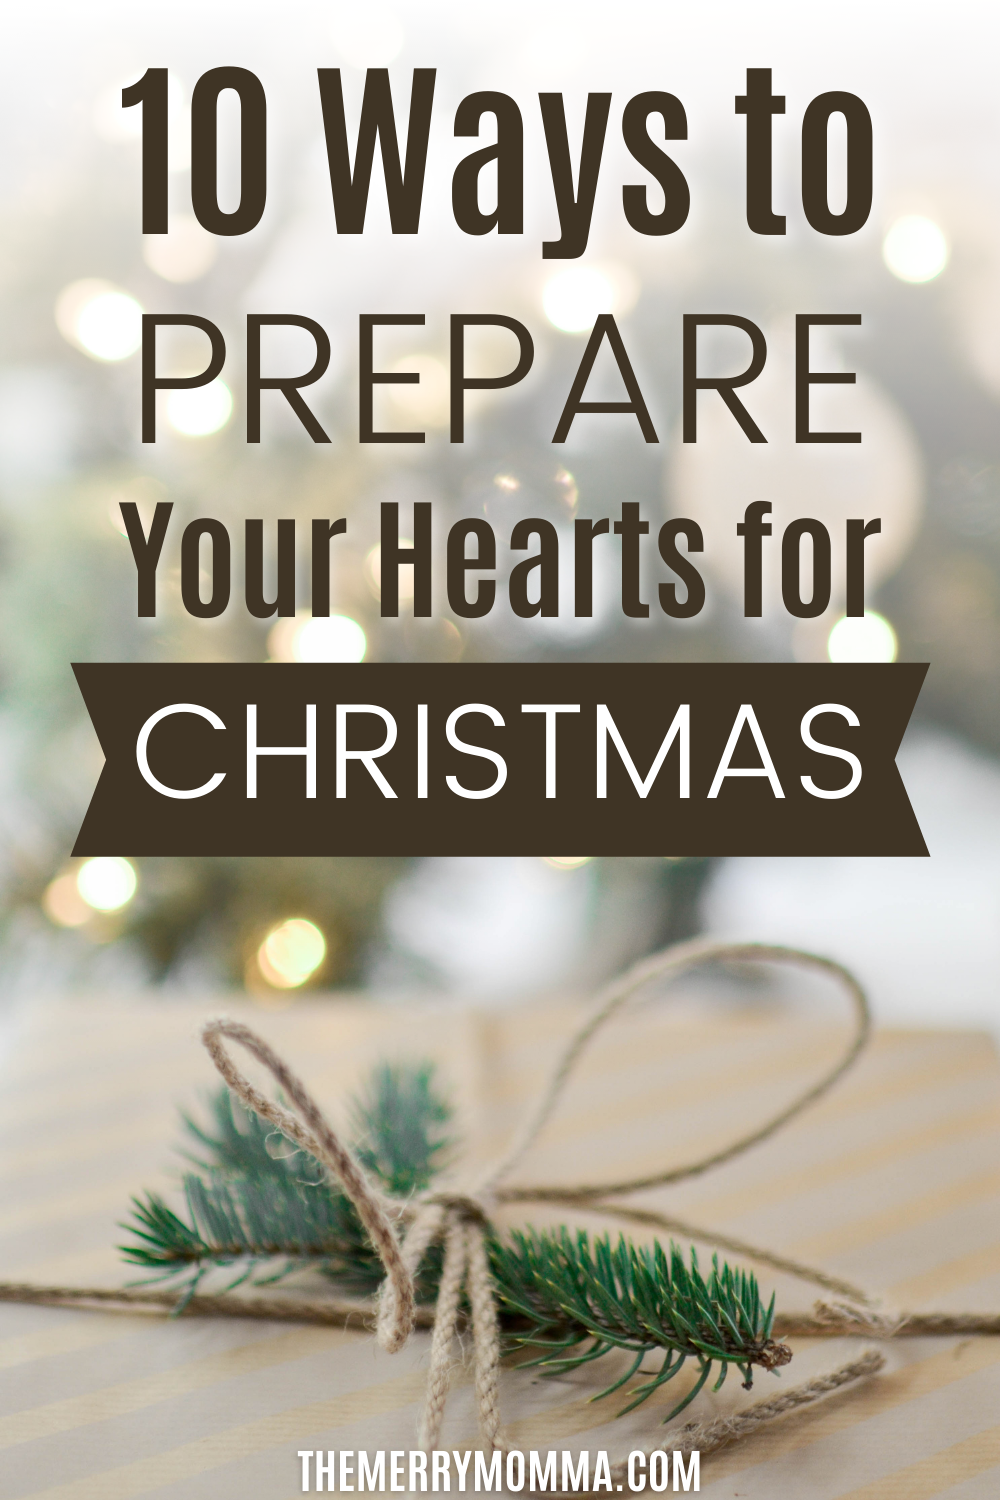 10 Ways to Prepare Your Heart for Christmas | Advent | The Merry Momma